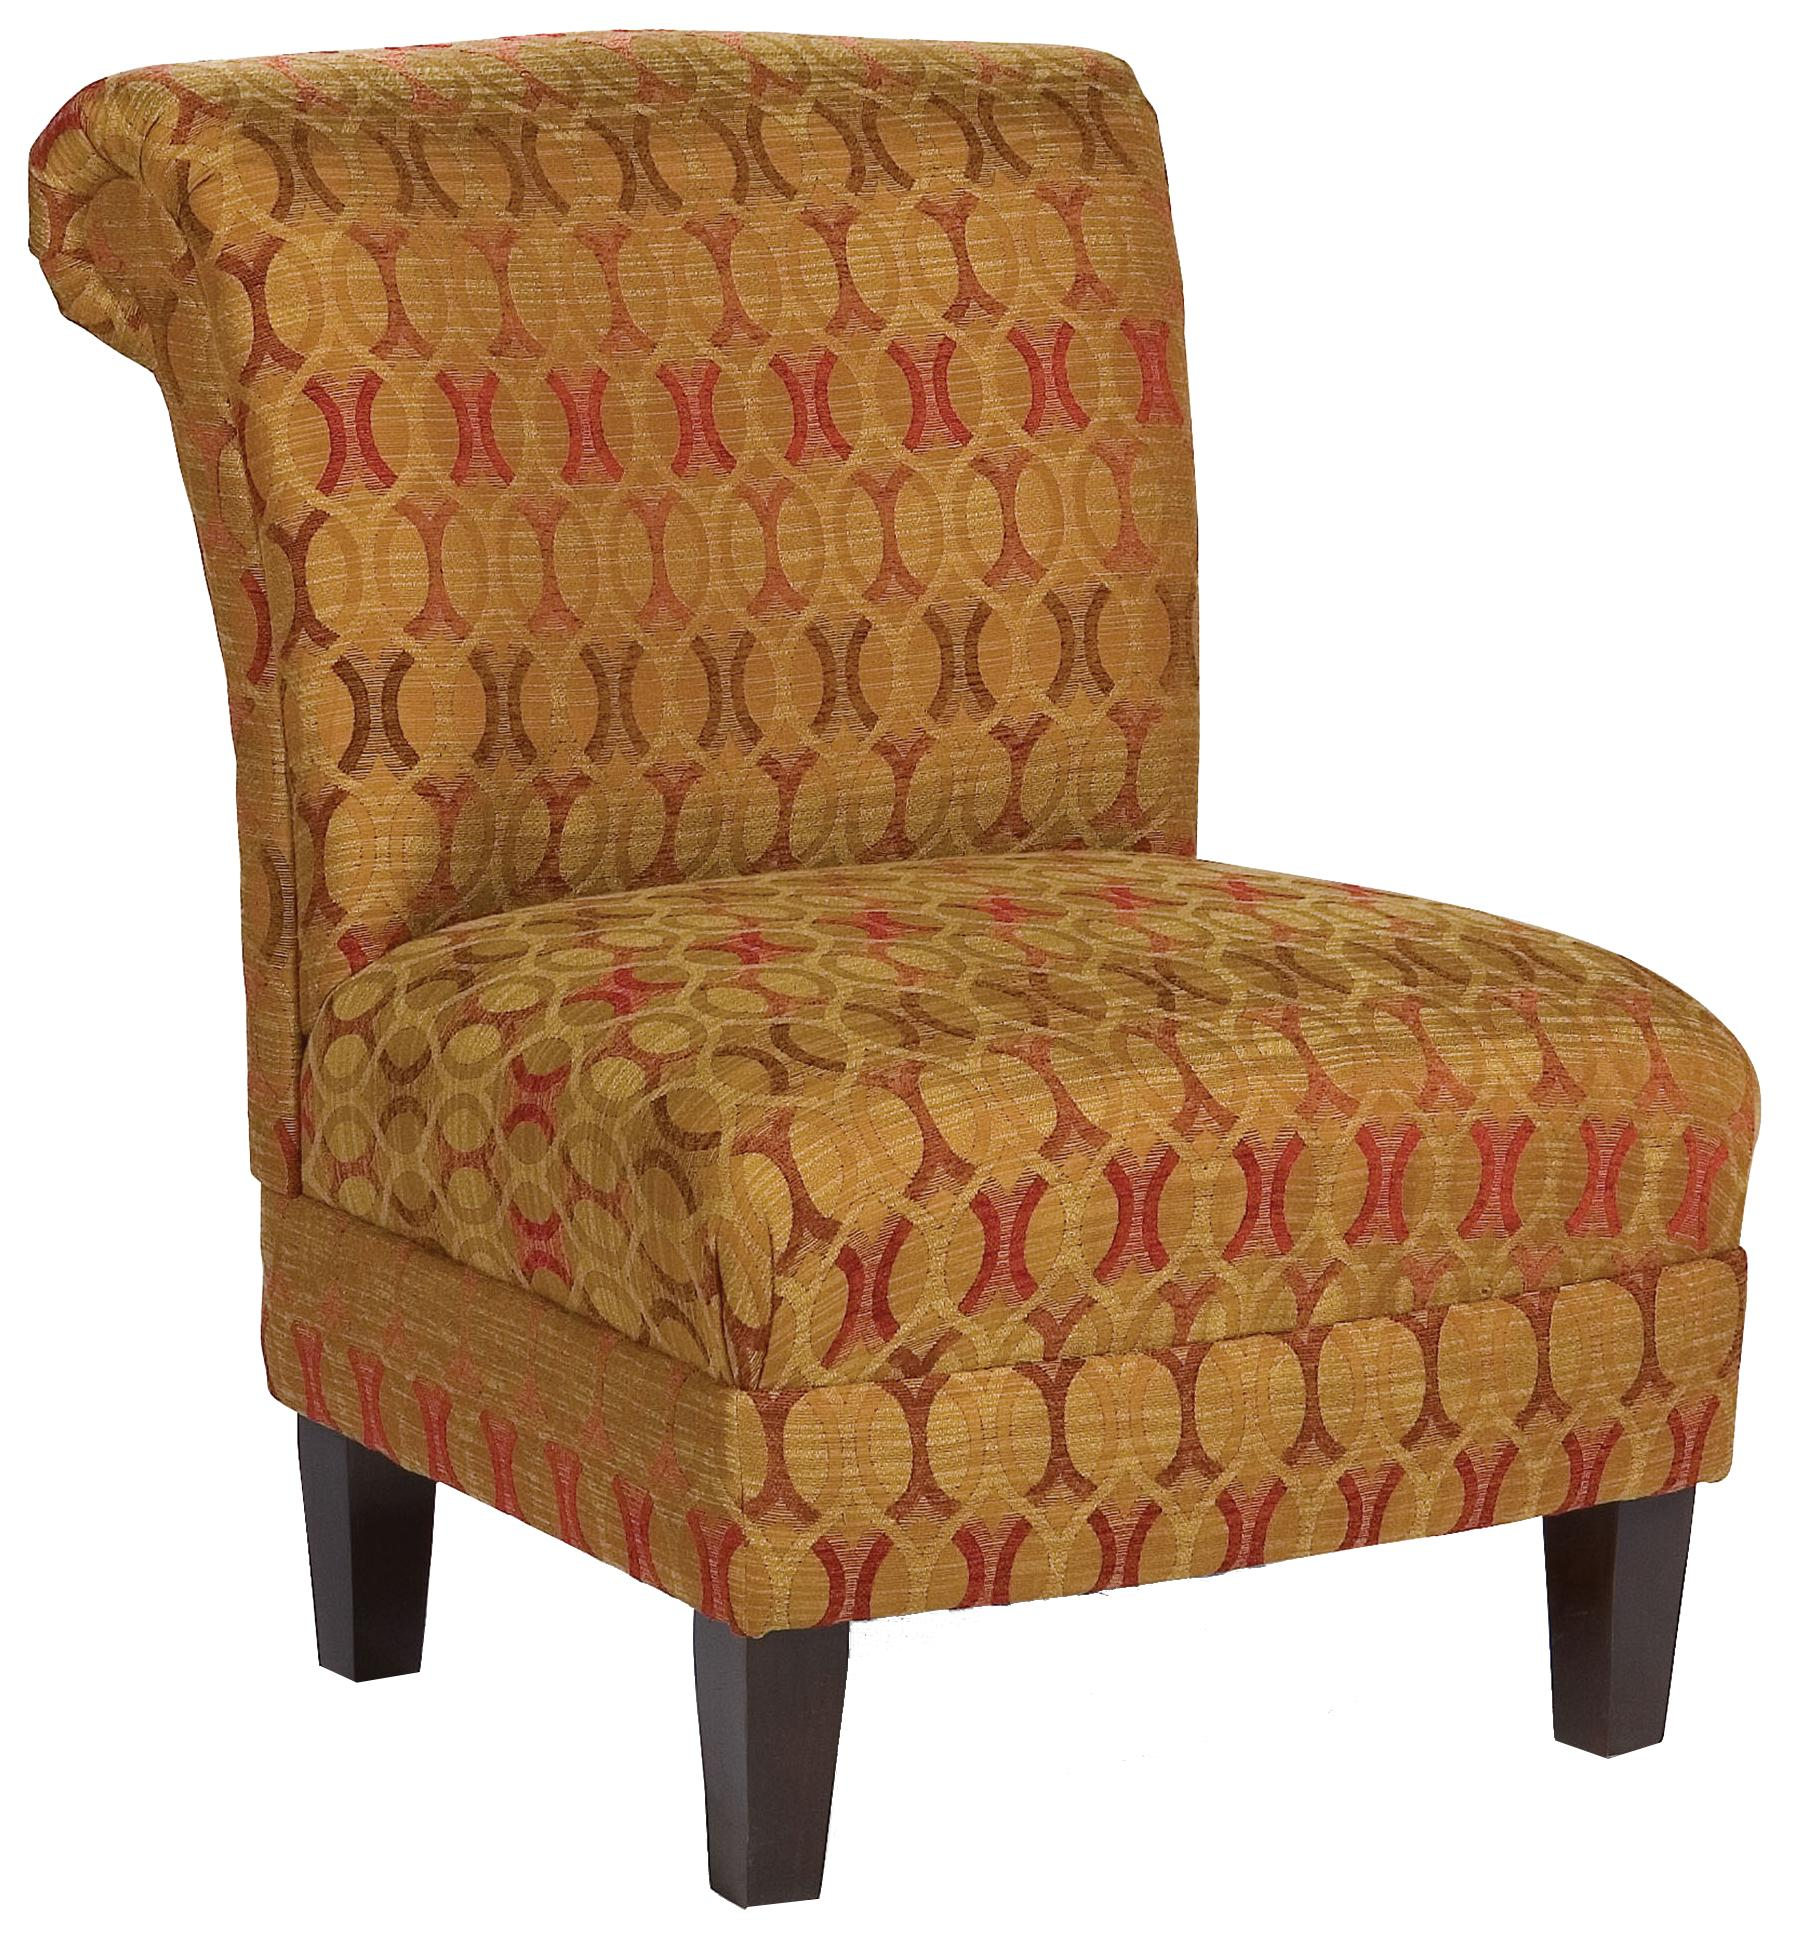 Fairfield Chairs Armless Lounge Chair - Item Number: 1474-01